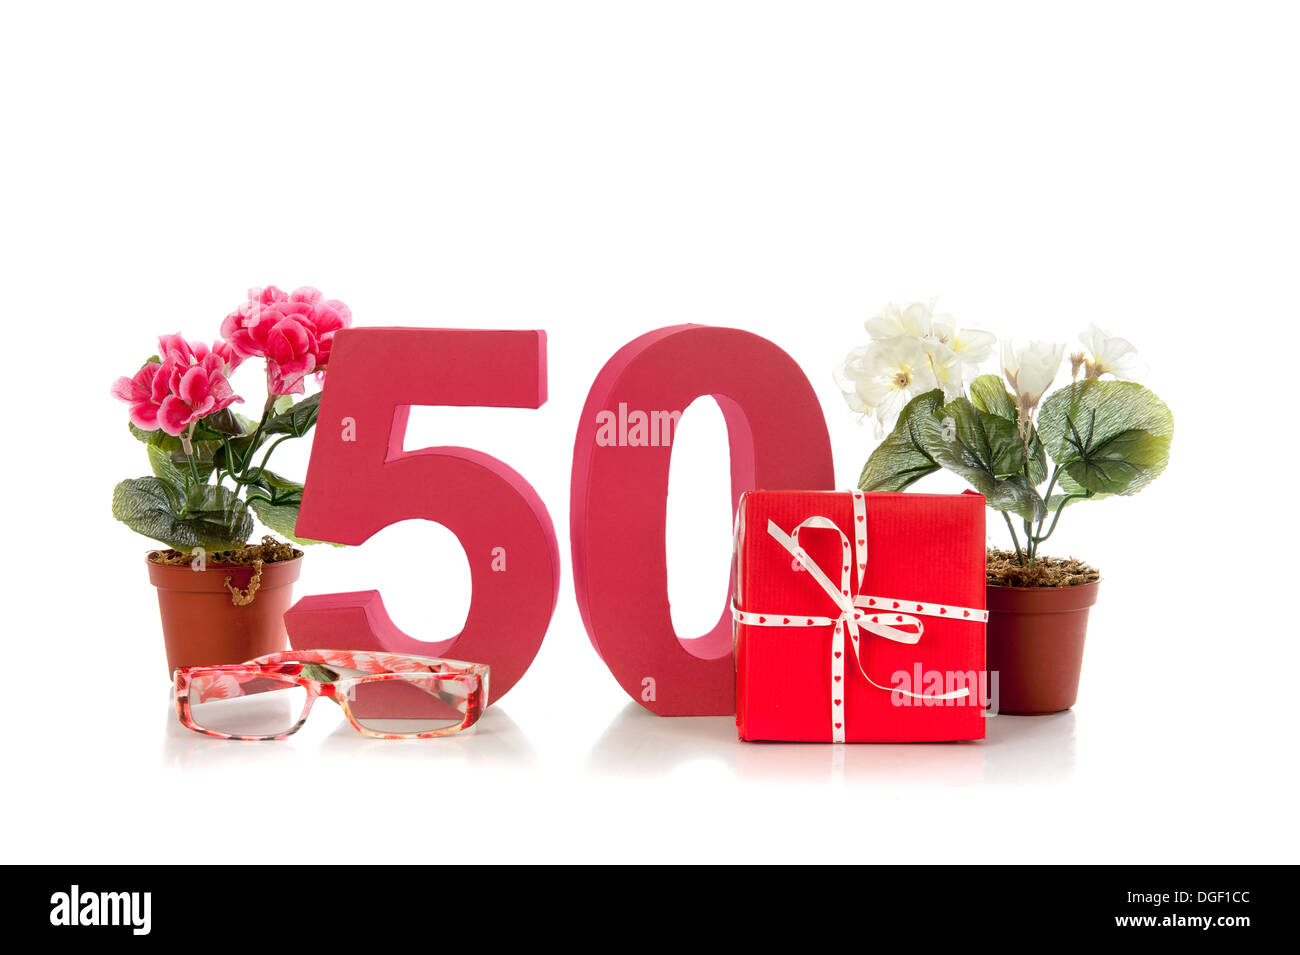 Celebrating your Fiftieth birthday, getting presents like reading glasses and a begonia - Stock Image